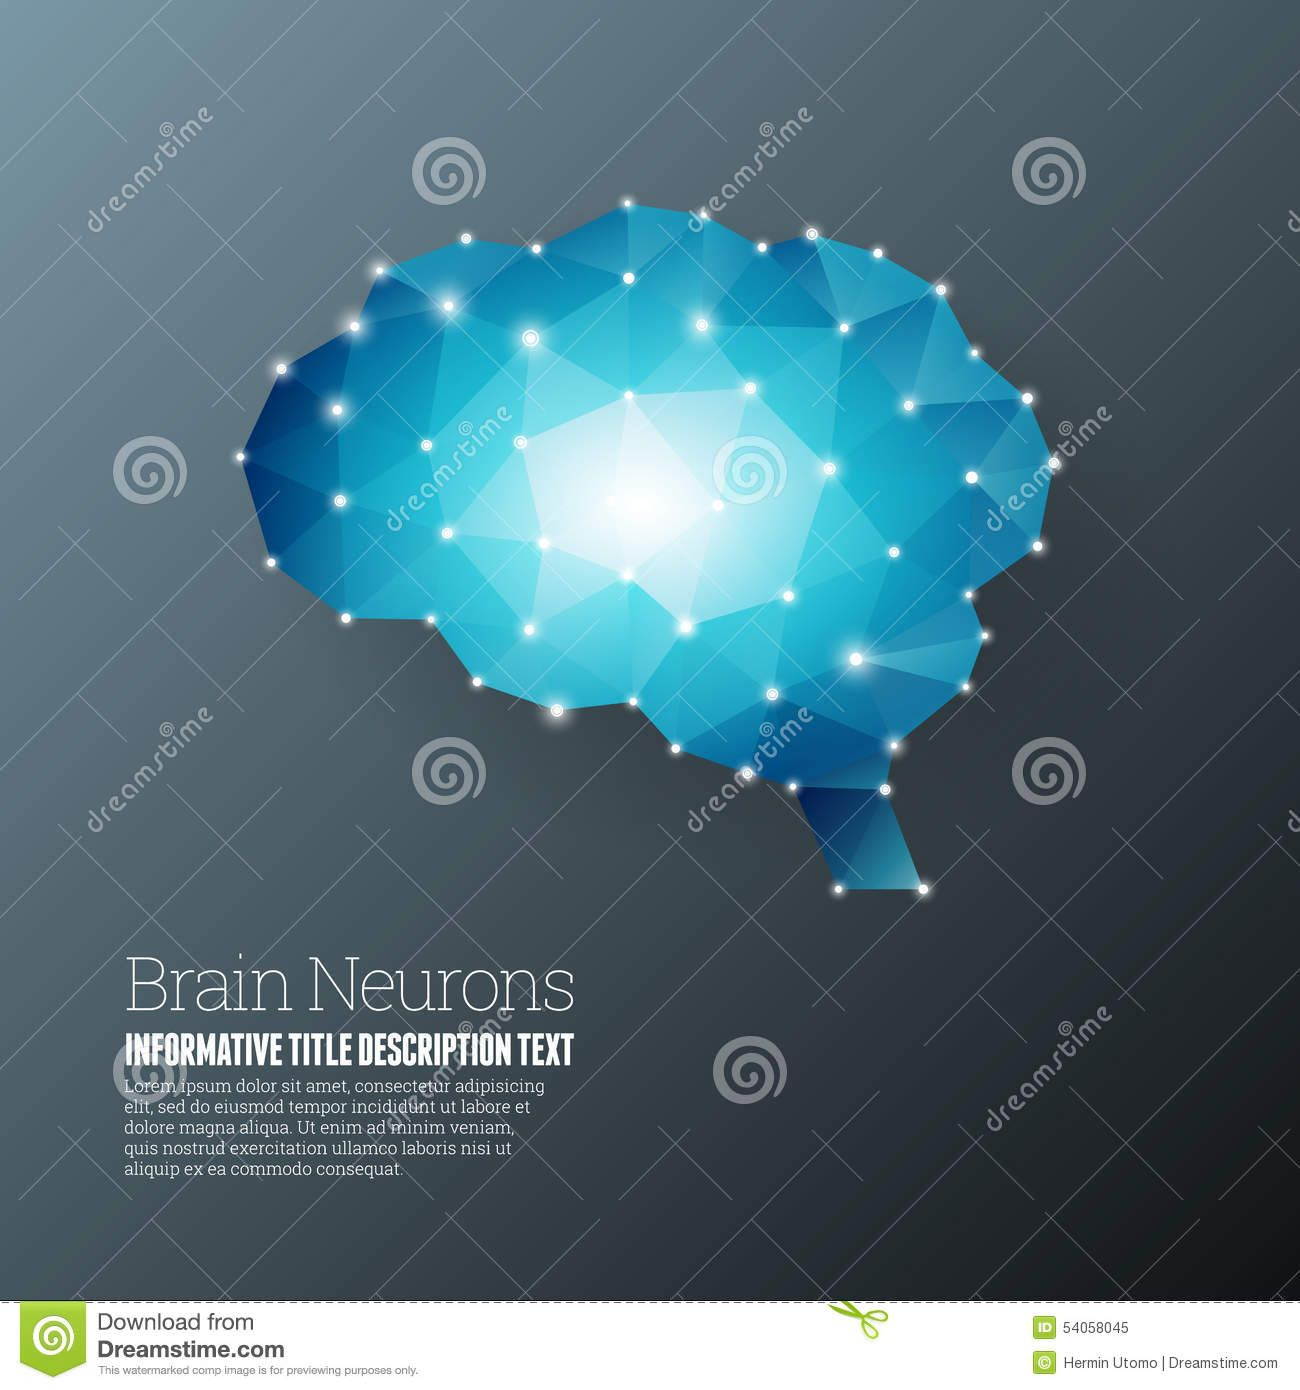 Image result for graphic design neurons in brain